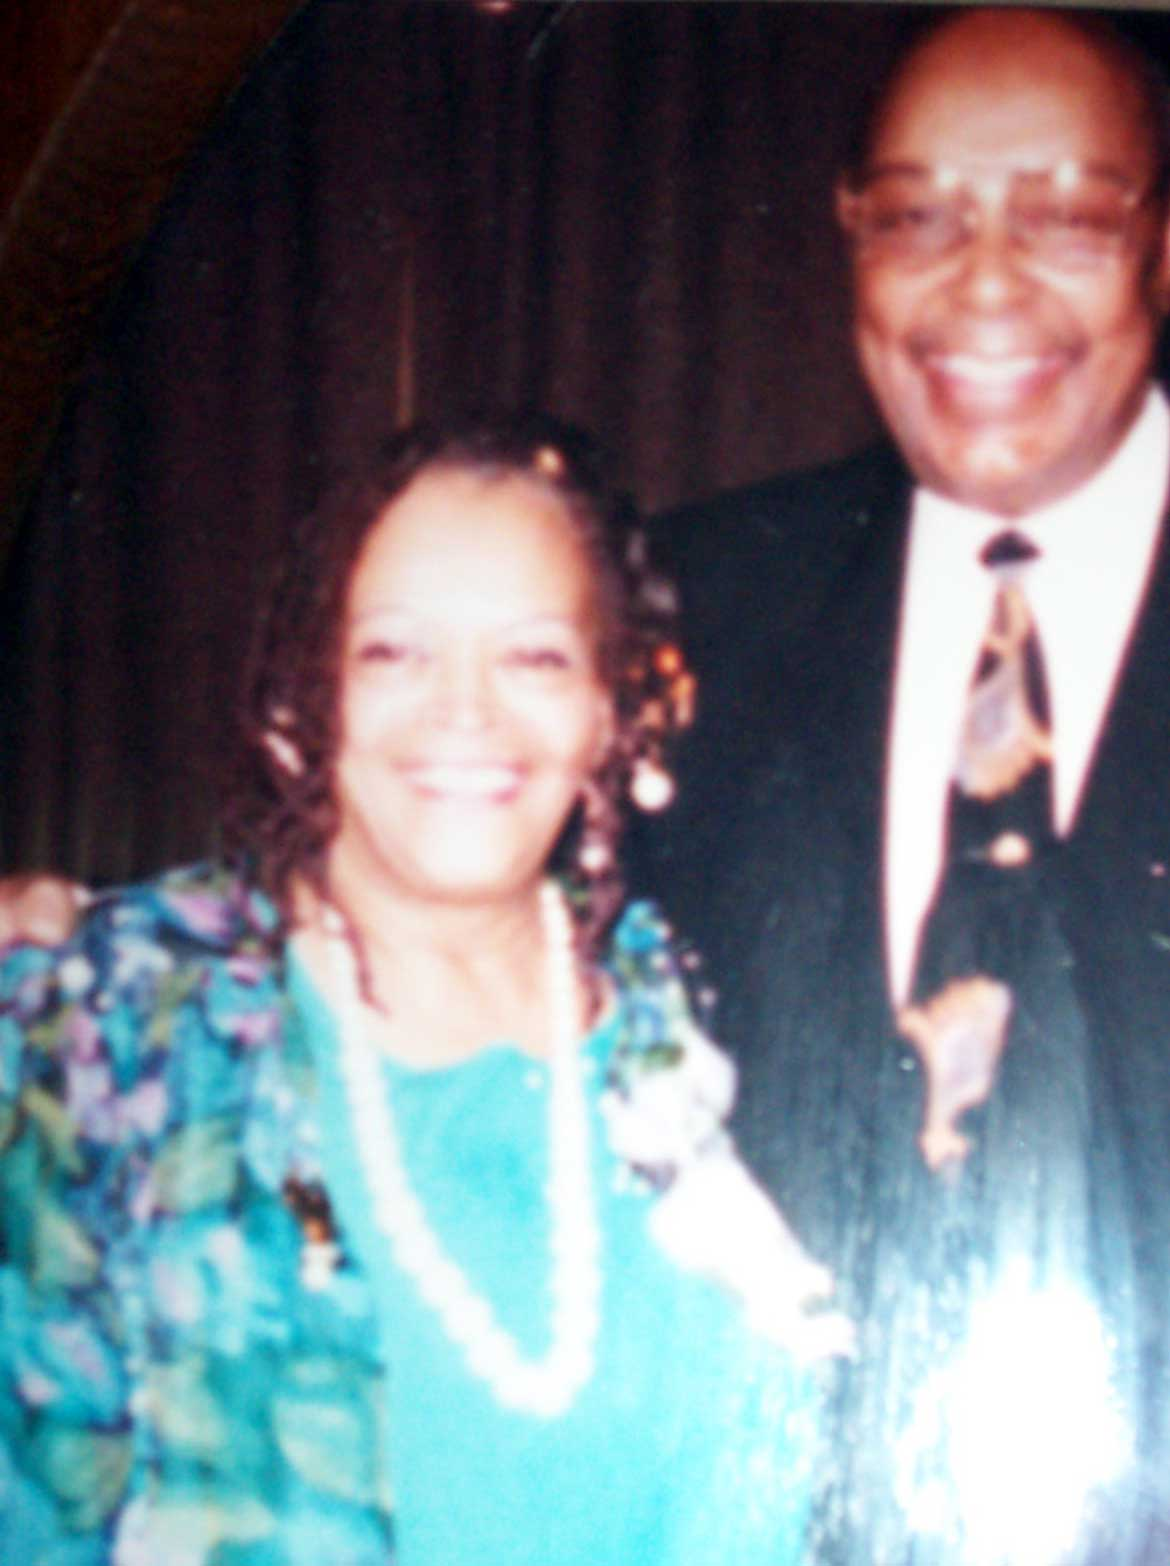 Juanita Carrothers with Lou Stokes